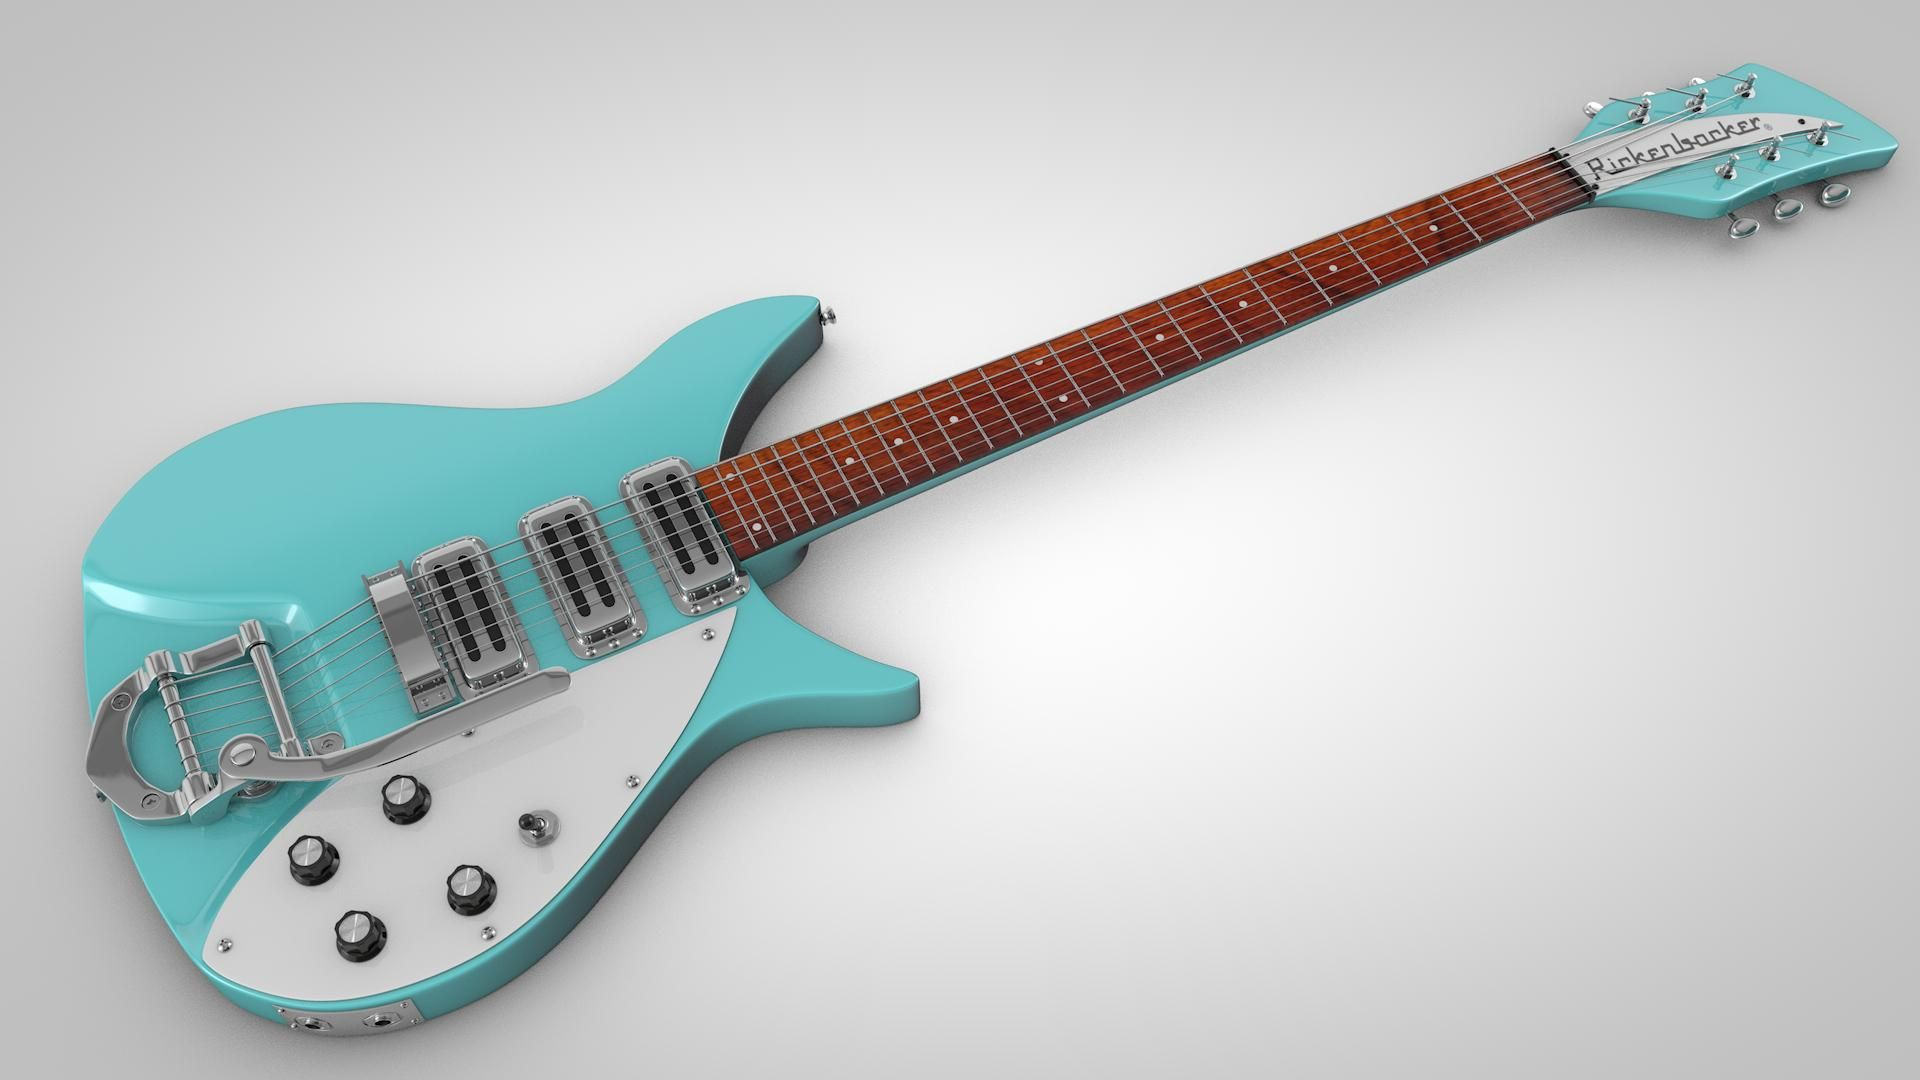 Vintage Electric Guitar 3d Model Ad Electric Vintage Model Guitar Vintage Electric Guitars Electric Guitar Guitar